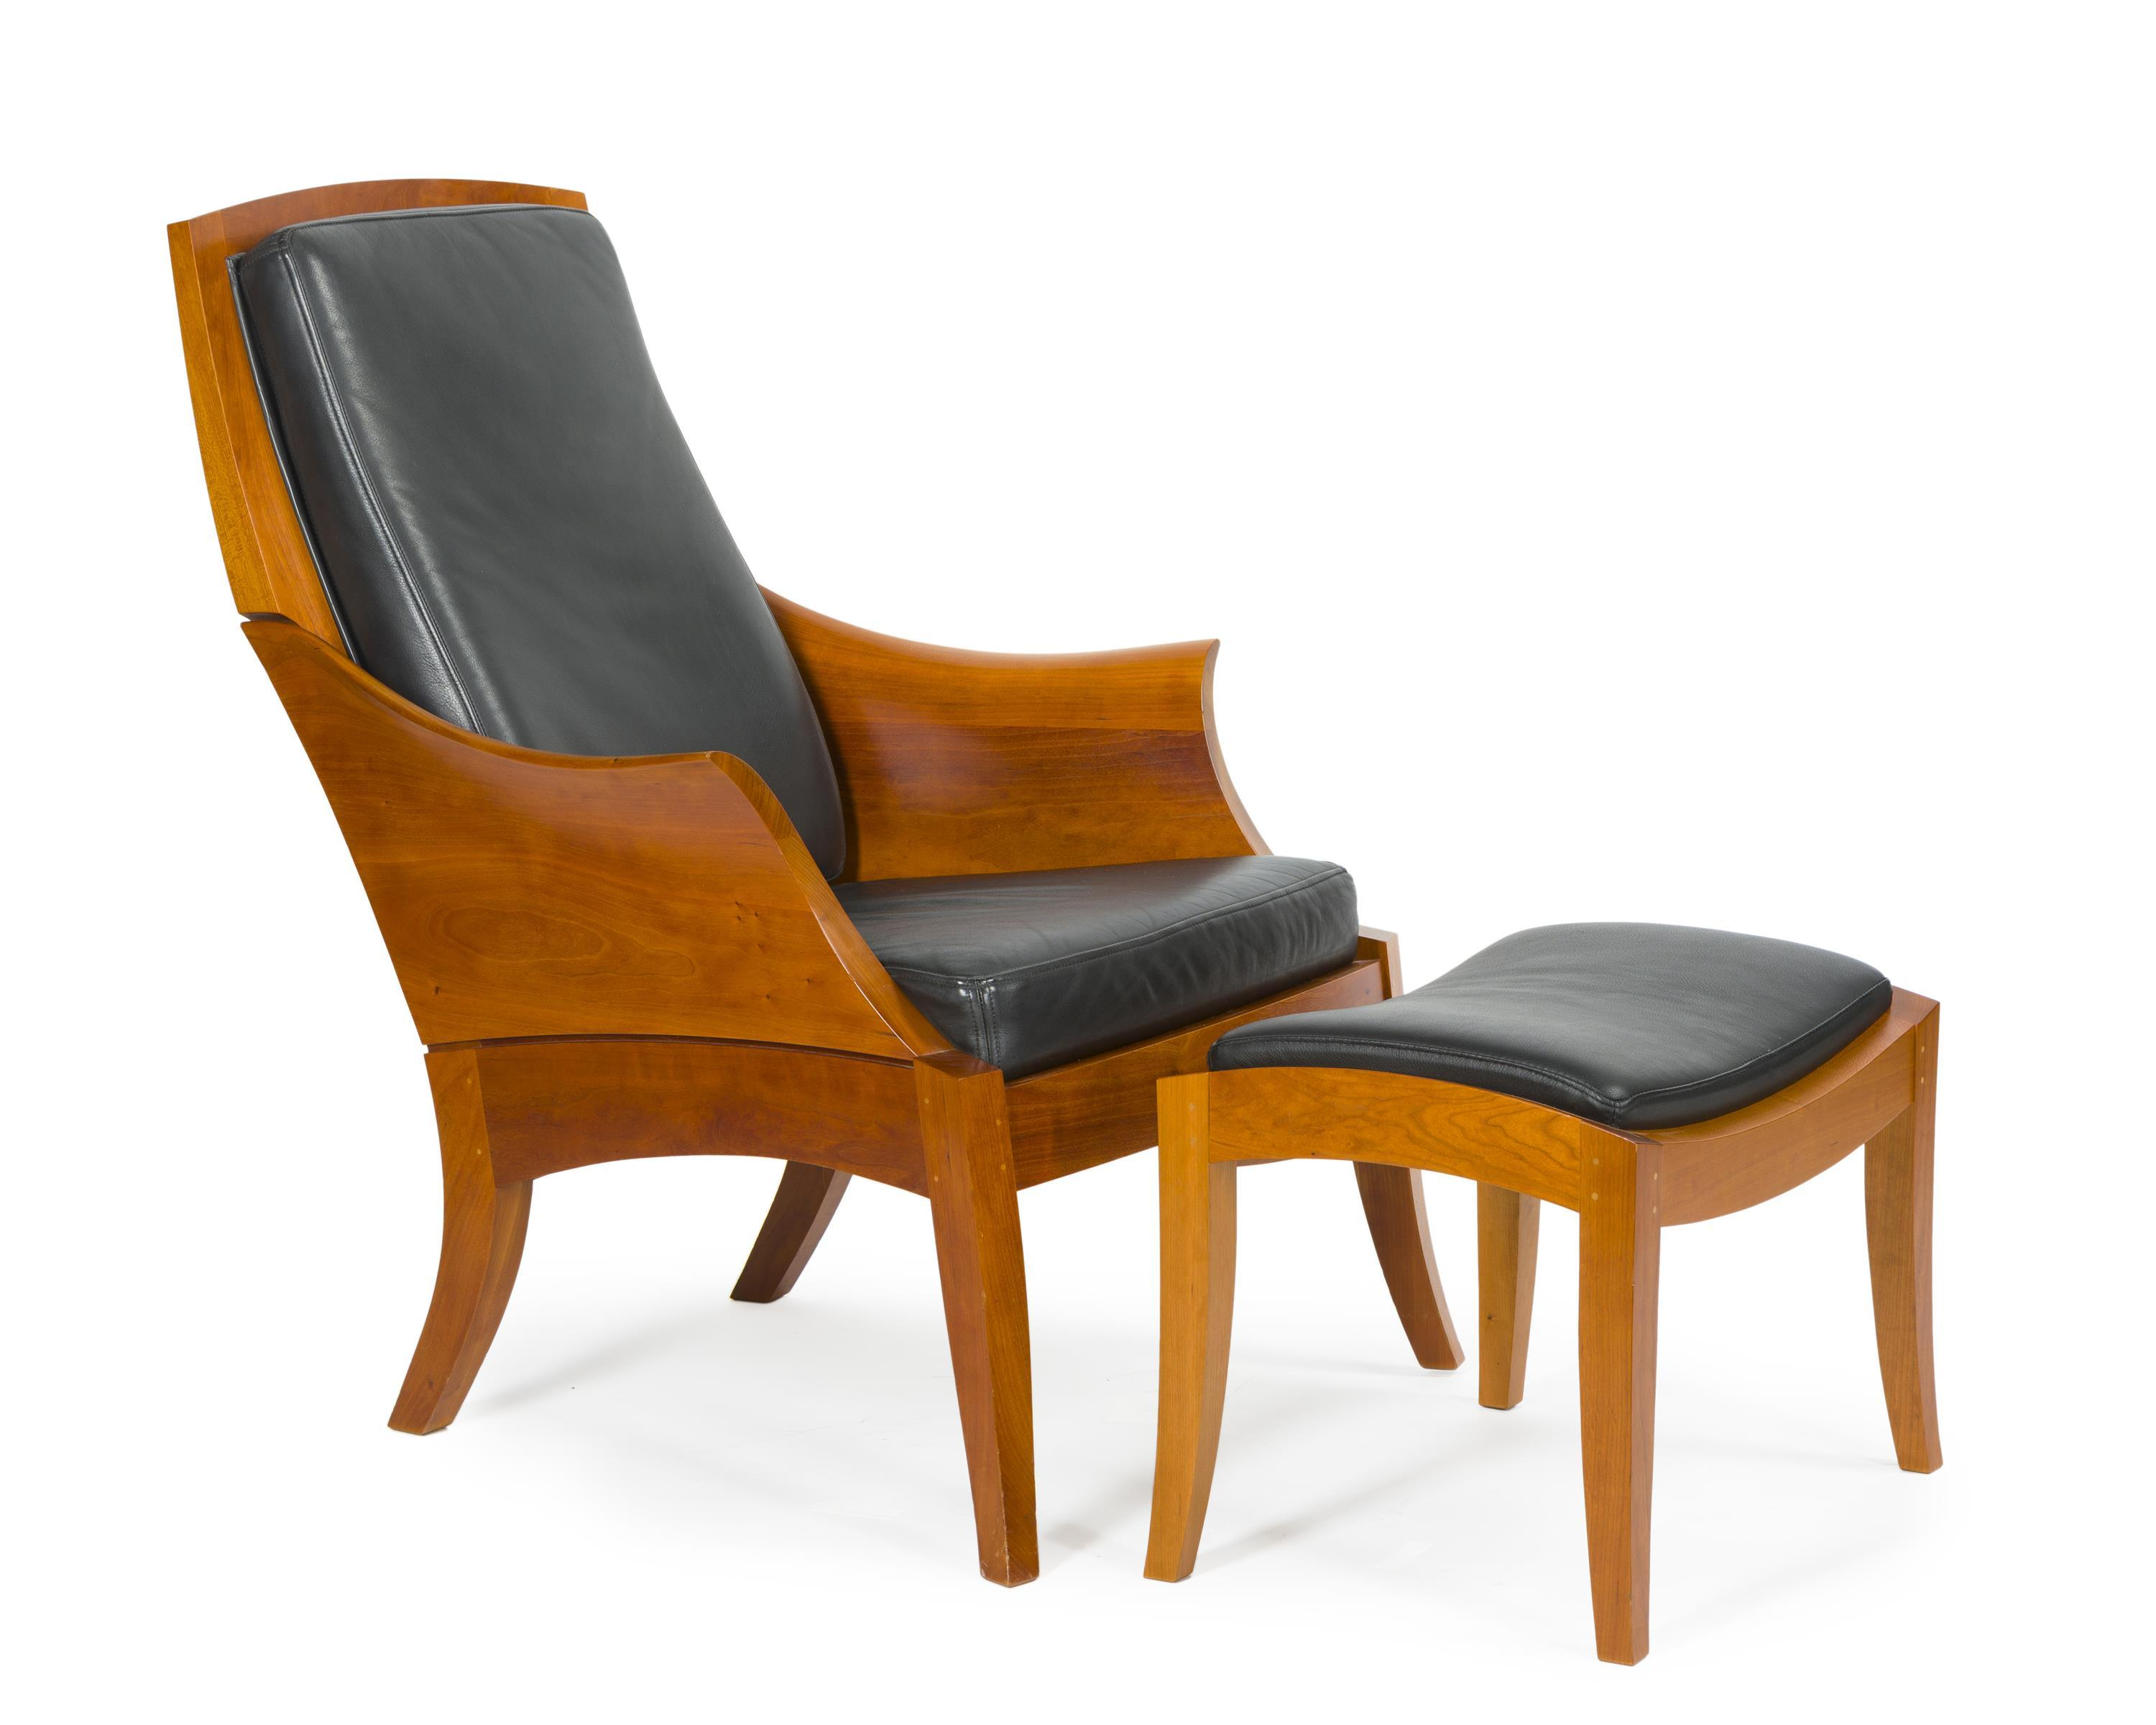 A Thomas Moser wing chair and ottoman